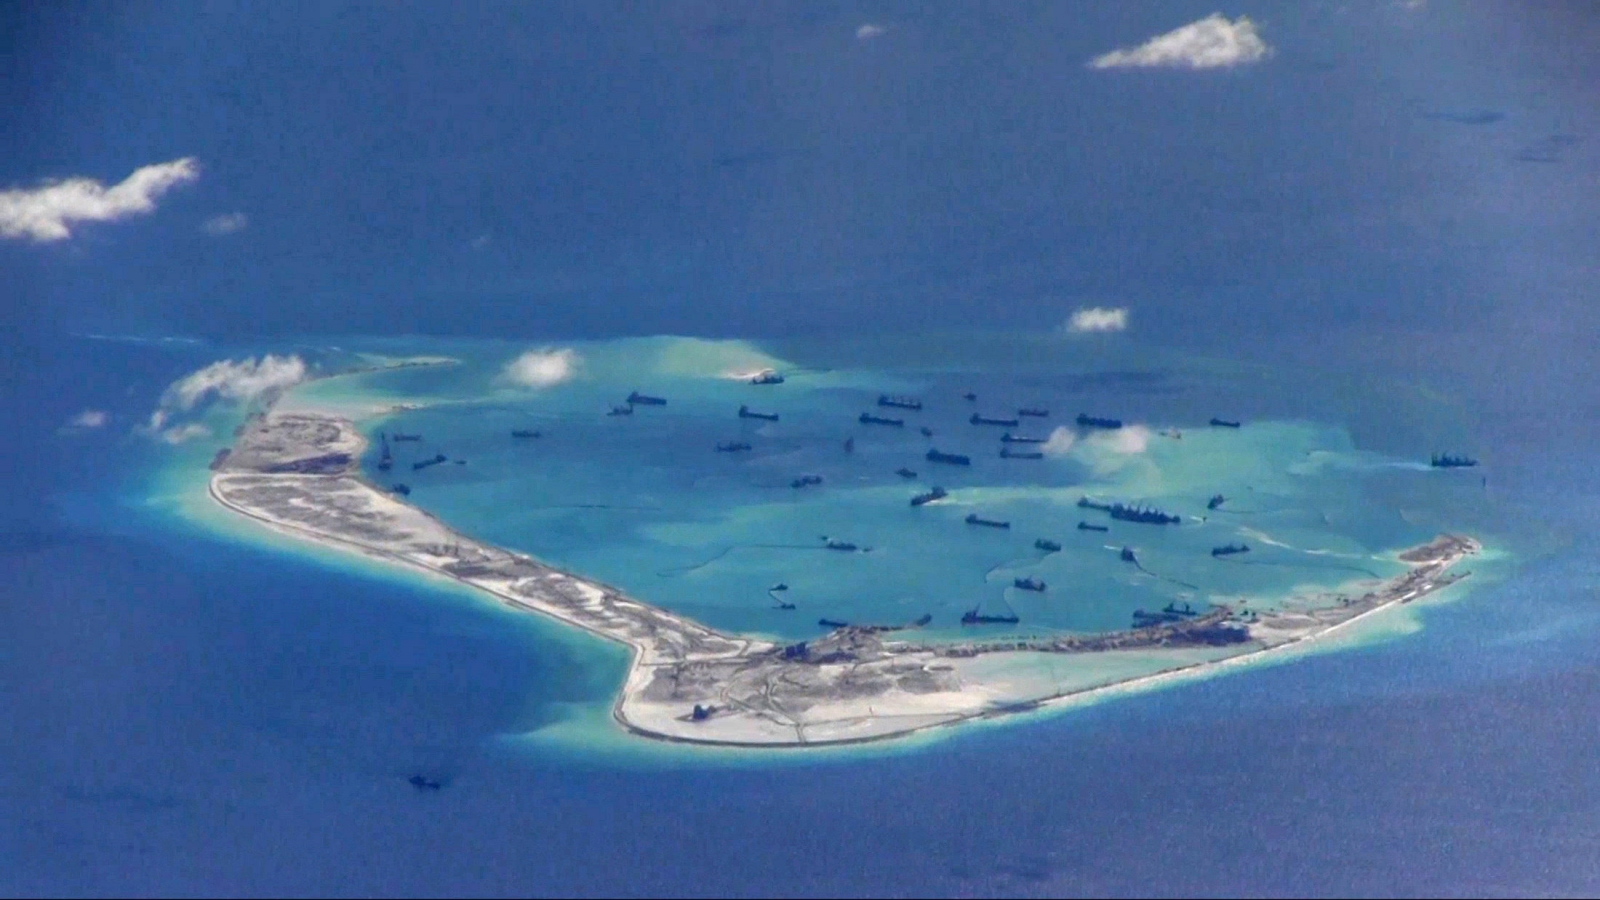 south china sea and east china sea disputes politics essay Everything you need to know about the south china sea conflict - in under five minutes  rally over territorial dispute with china in south china sea.